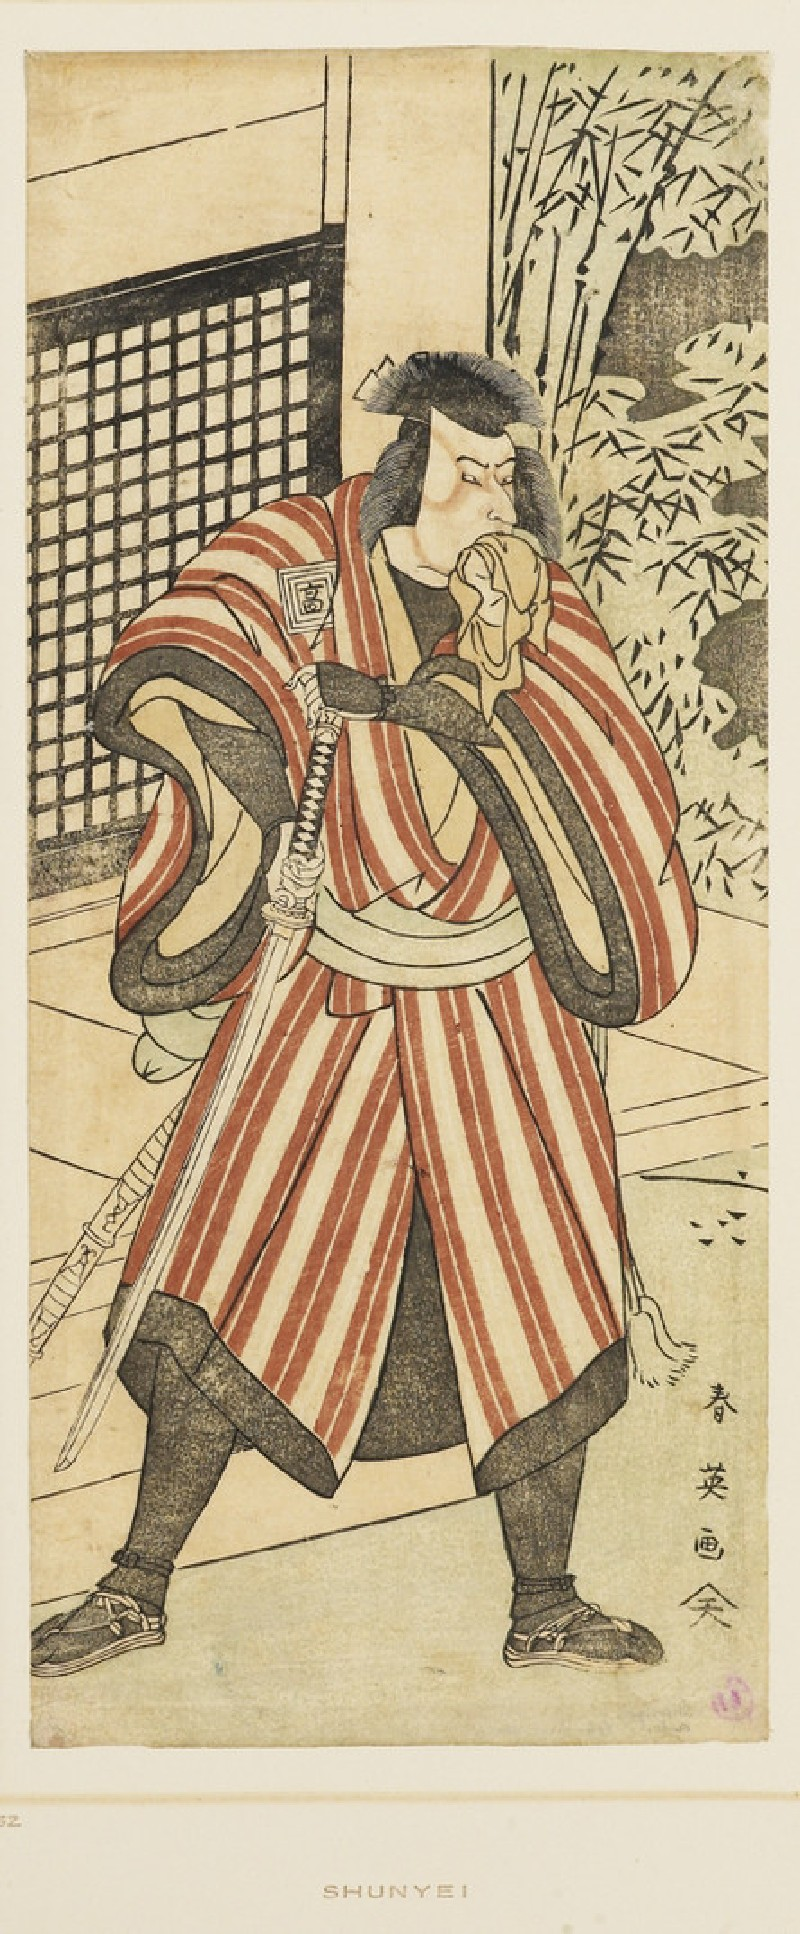 Ichikawa Komazō II in winter clothing holding a drawn sword and with a handerkerchief in his mouth